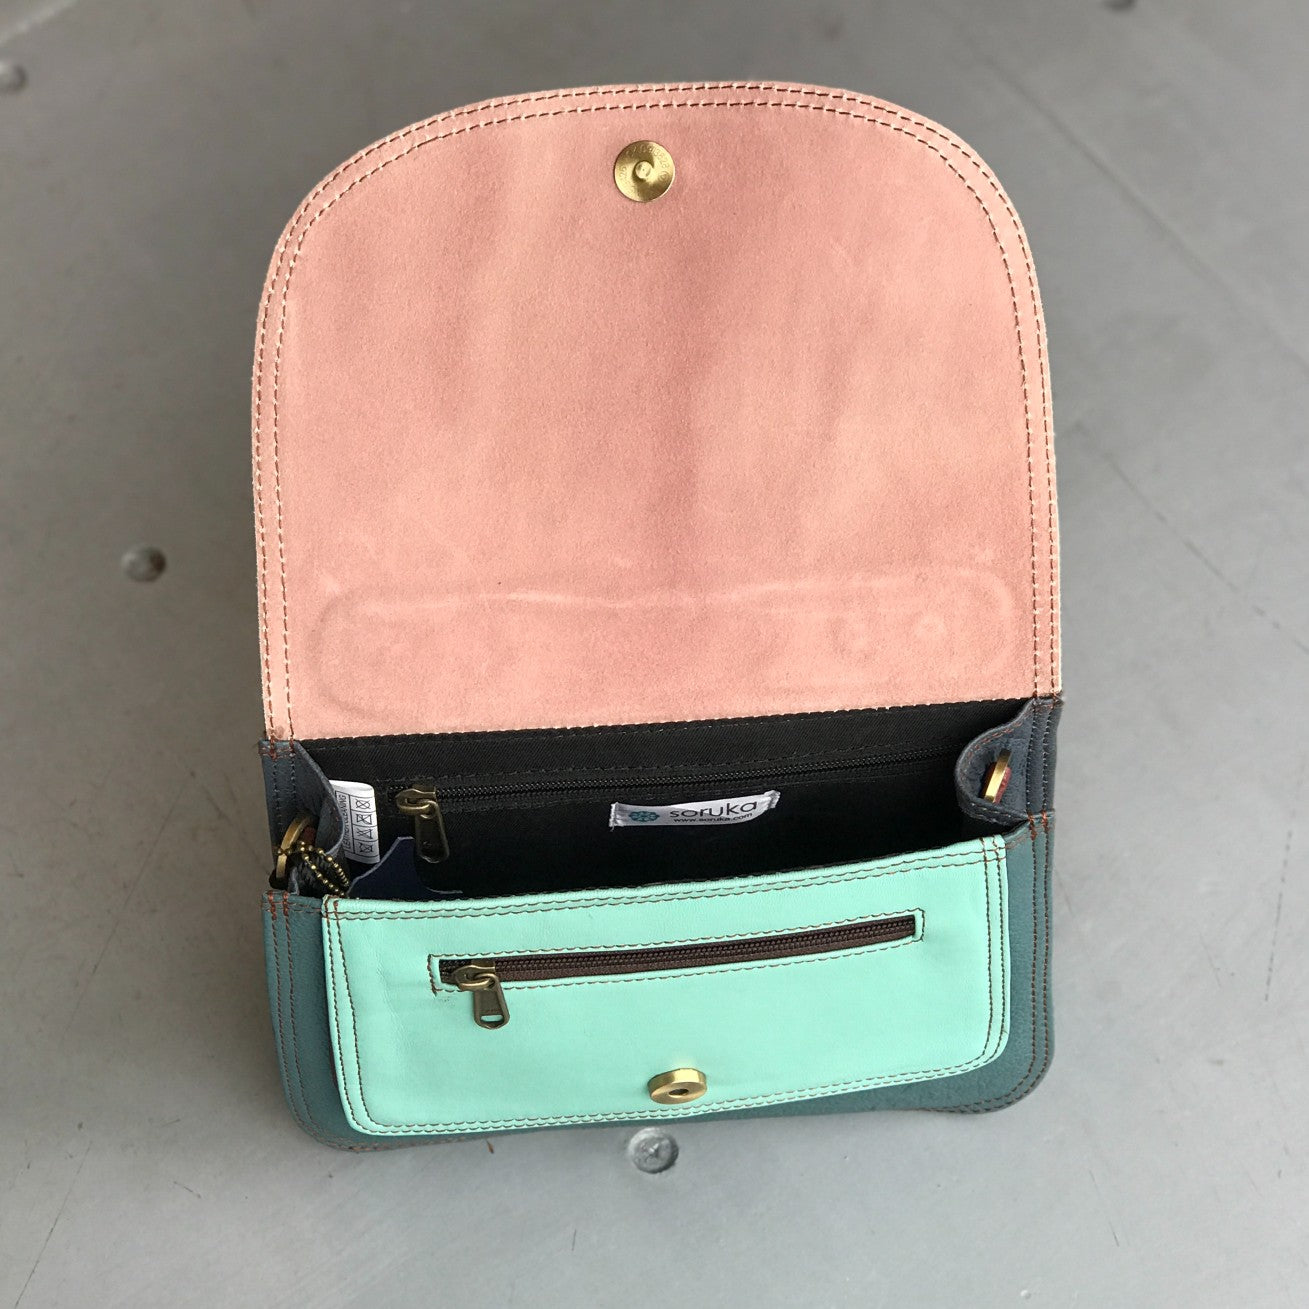 Premium Recycled Leather Small Satchel - Teal, Navy, Dusky Pink